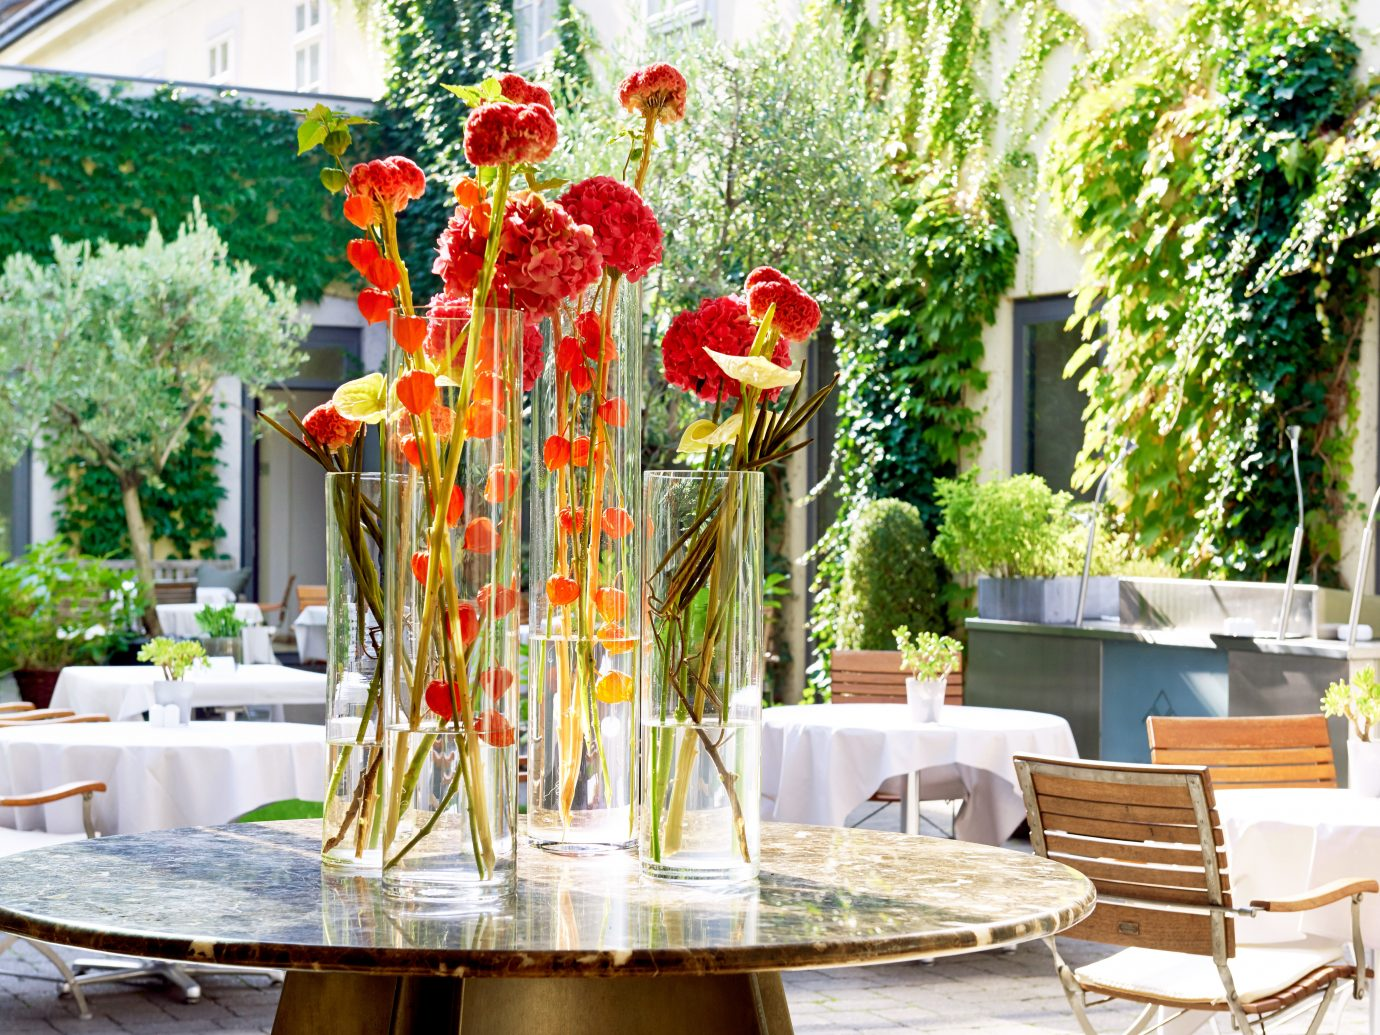 Austria City Courtyard Design Dining Drink Eat europe Garden Hip Hotels Modern Outdoors Vienna tree flower arranging flower floristry meal floral design interior design centrepiece restaurant backyard set dining table table